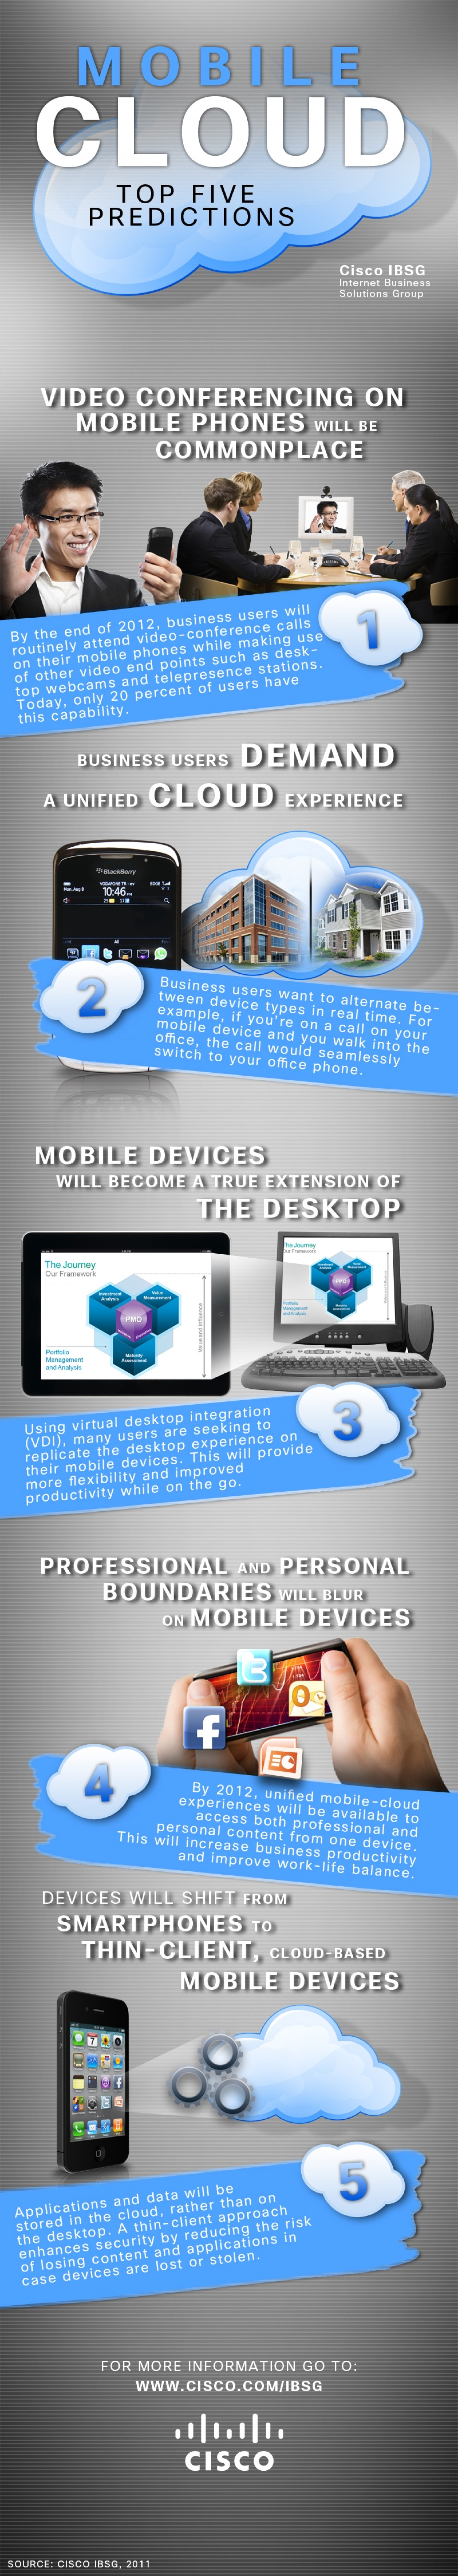 What Happens When Mobile and Cloud Collide? Infographic